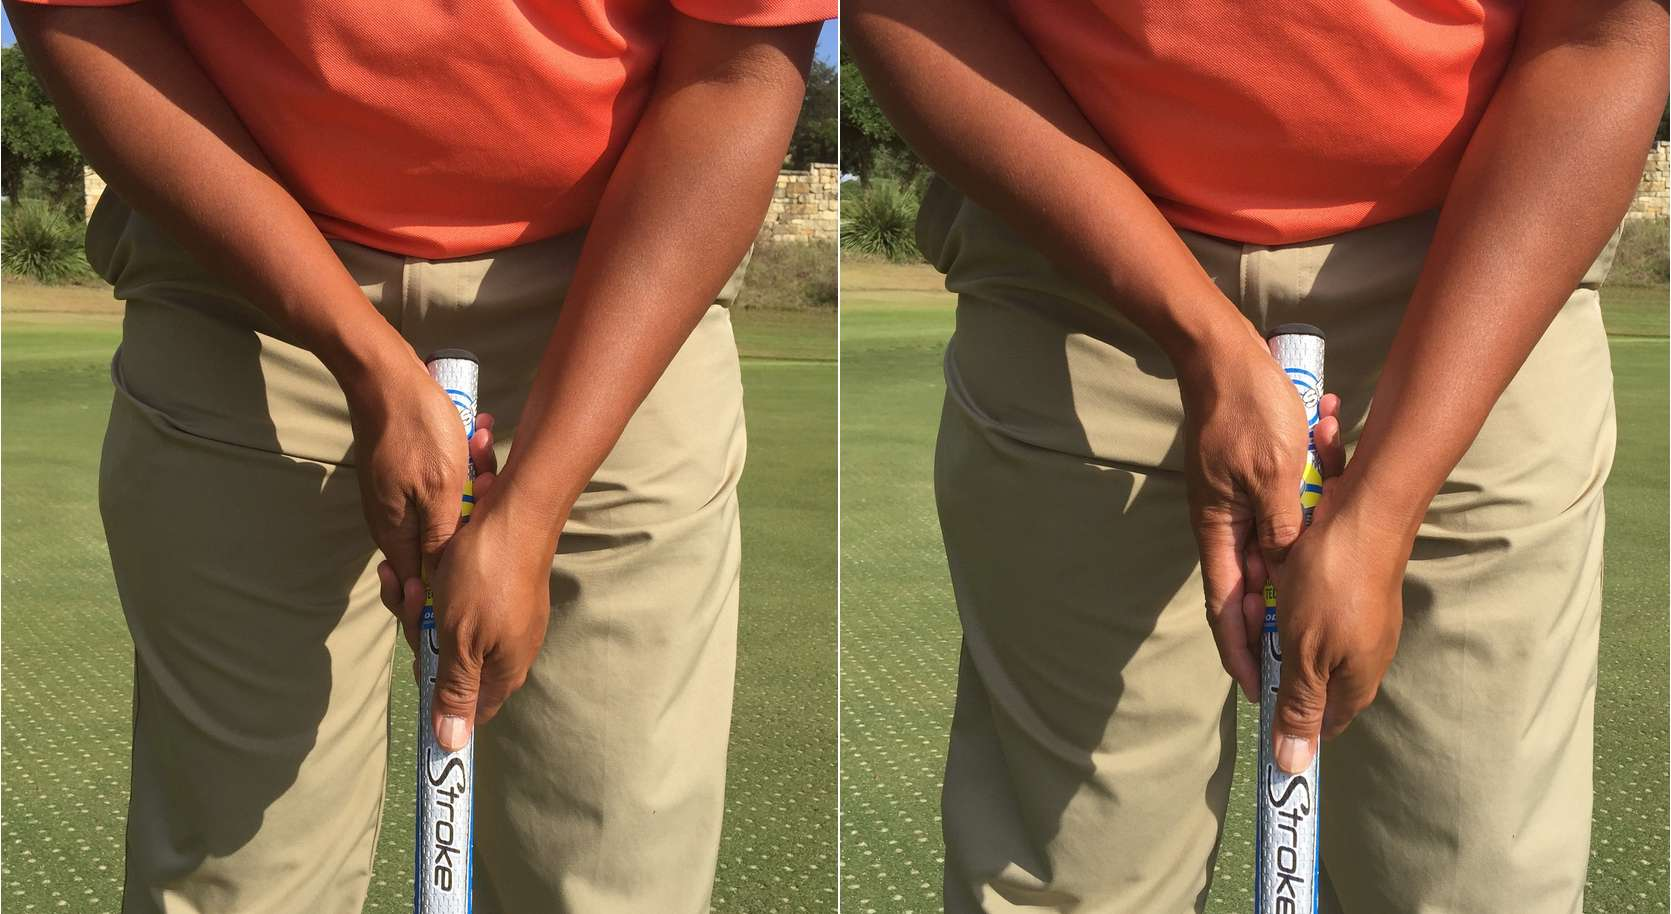 How to Hold the Putter: Pros, Cons of Putting Grips